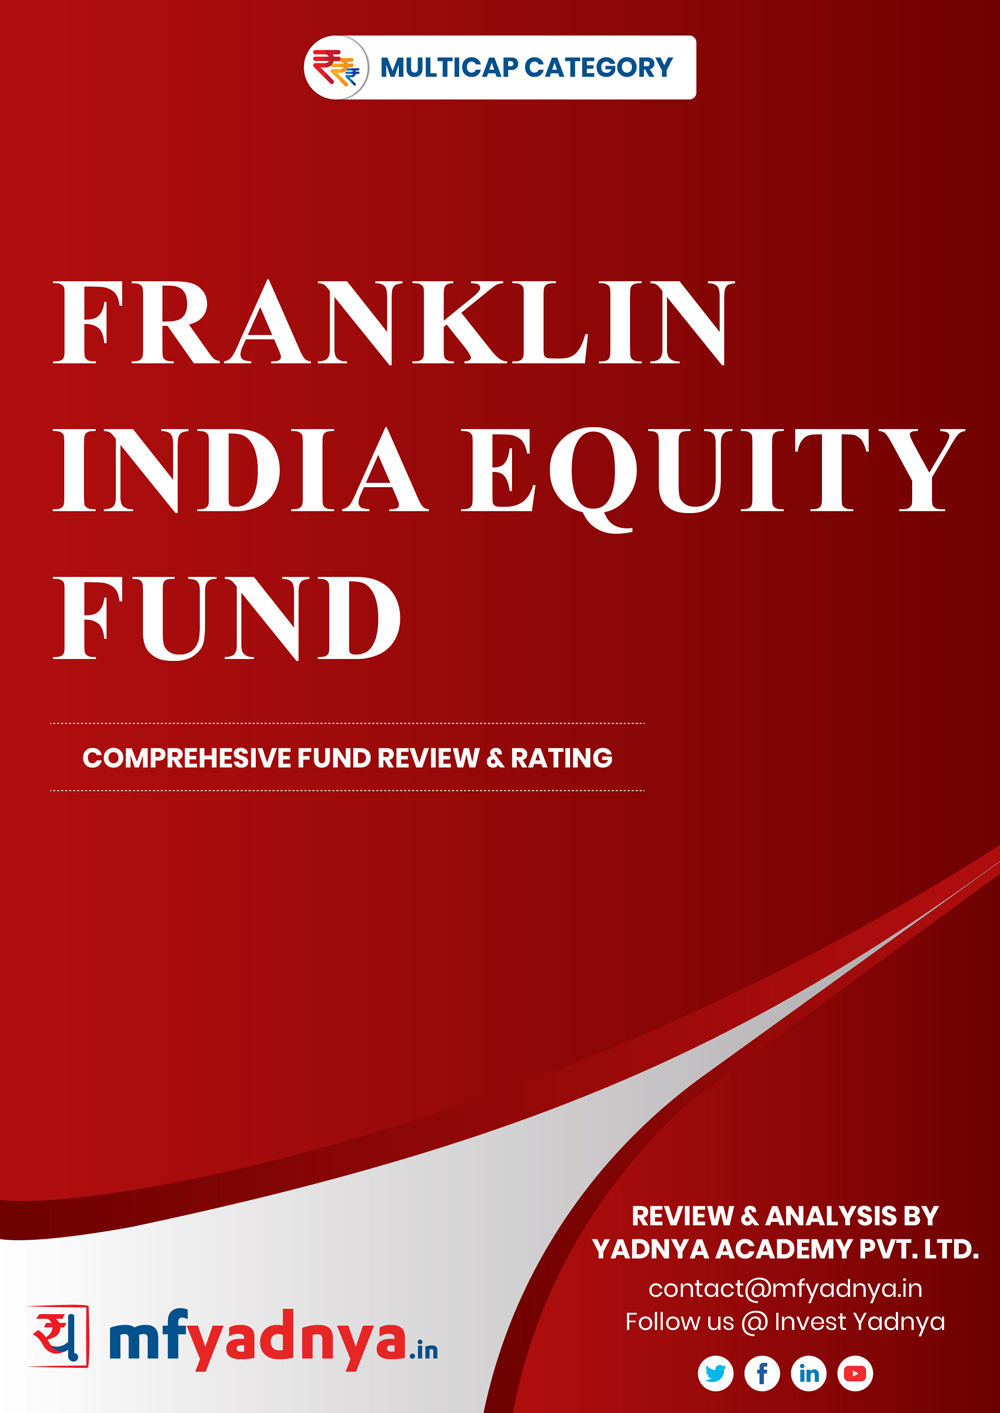 Multi-Cap Category Review - Franklin India Equity Fund. Most Comprehensive and detailed MF review based on Yadnya's proprietary methodology of Green, Yellow & Red Star. Detailed Analysis & Review based on July 31st, 2019 data.